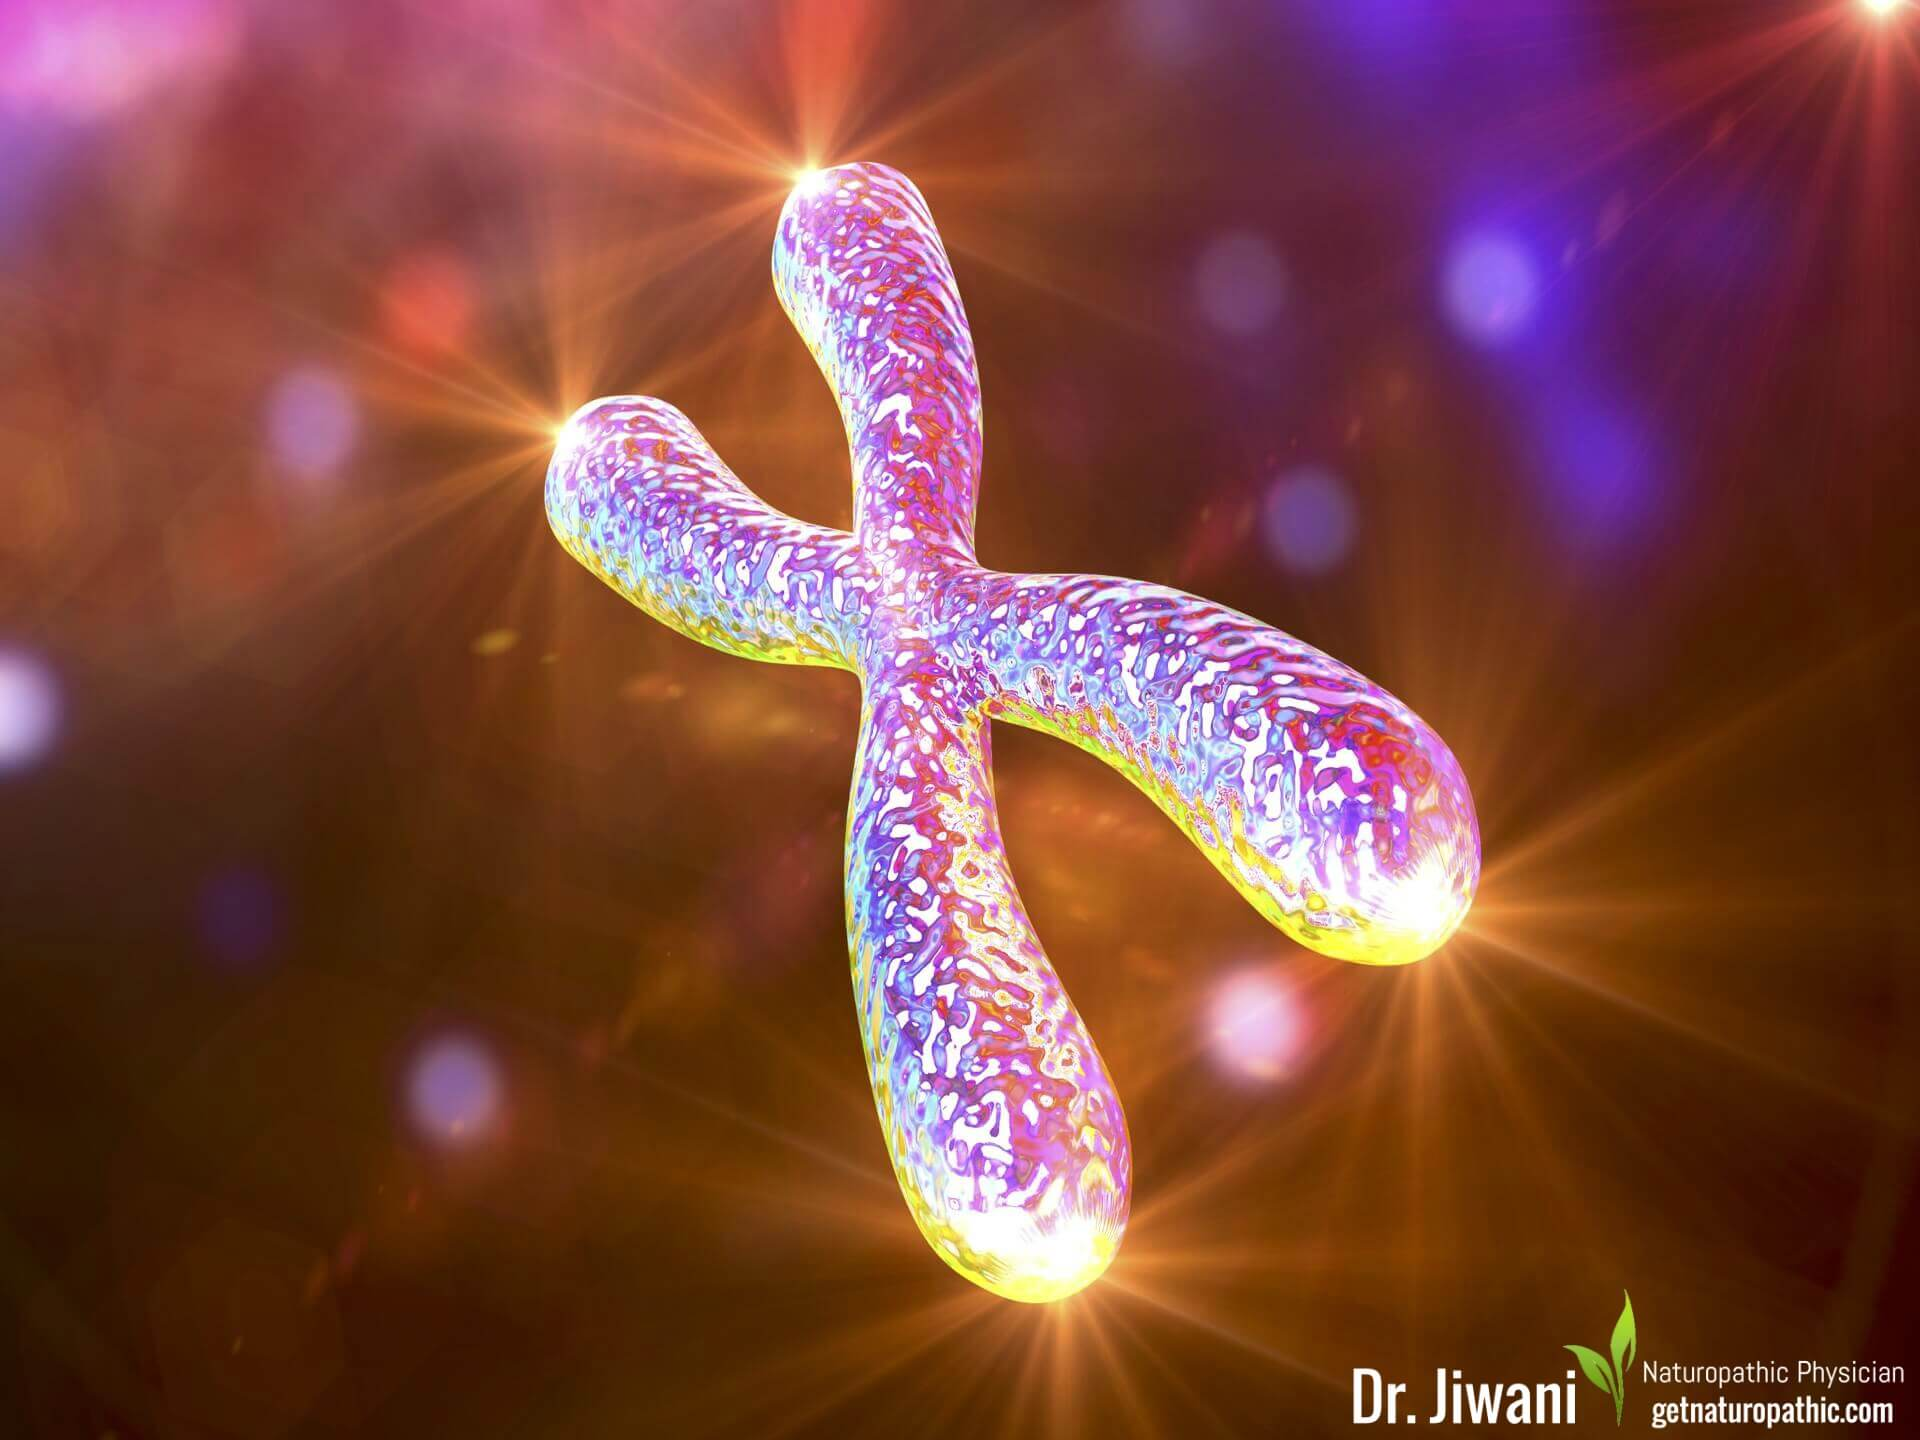 Telomeres: Anti-Aging Secrets To Improve Your Health & Longevity| Dr. Jiwani's Naturopathic Nuggets Blog